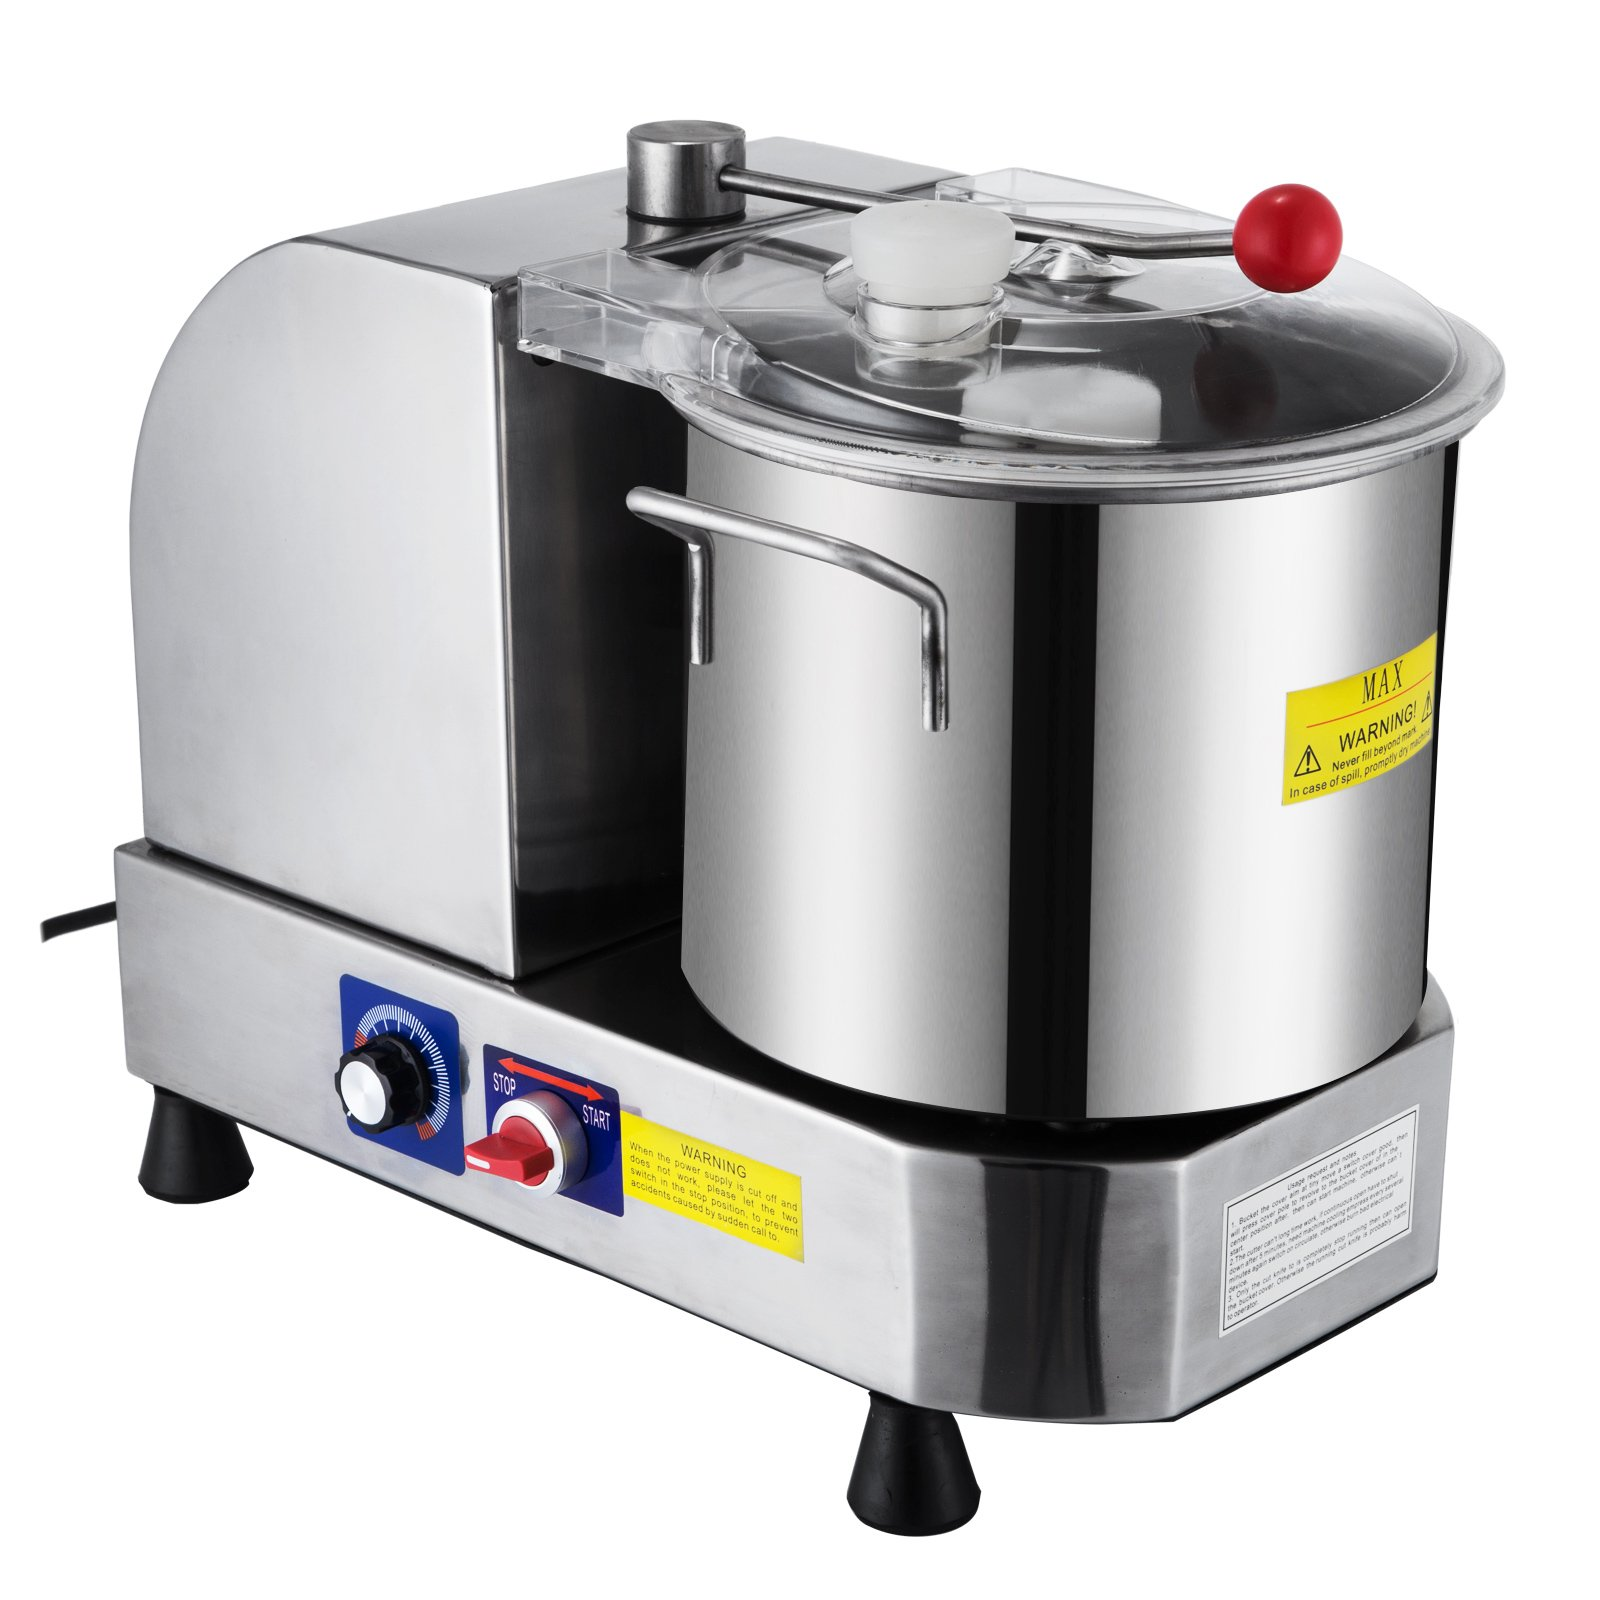 BestEquip 9L Food Cutter Mixer Machine Stainless Steel Commercial Double Metal Blades Food Processor for Meat Fruit Vegetables Processing (9L)